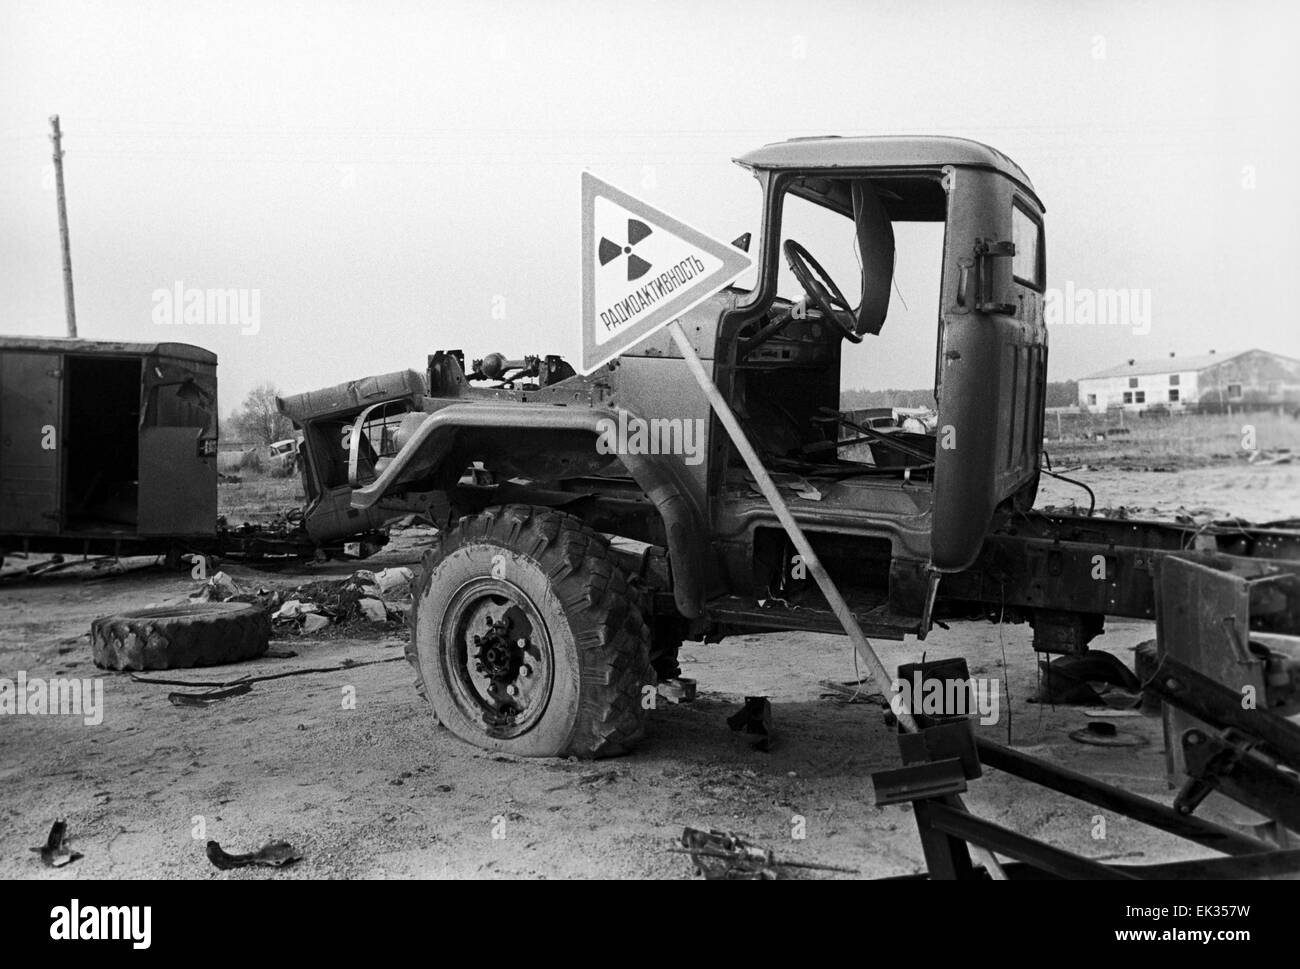 Ukrainian SSR. USSR. Radioactive machinery after the Chernobyl Disaster. - Stock Image